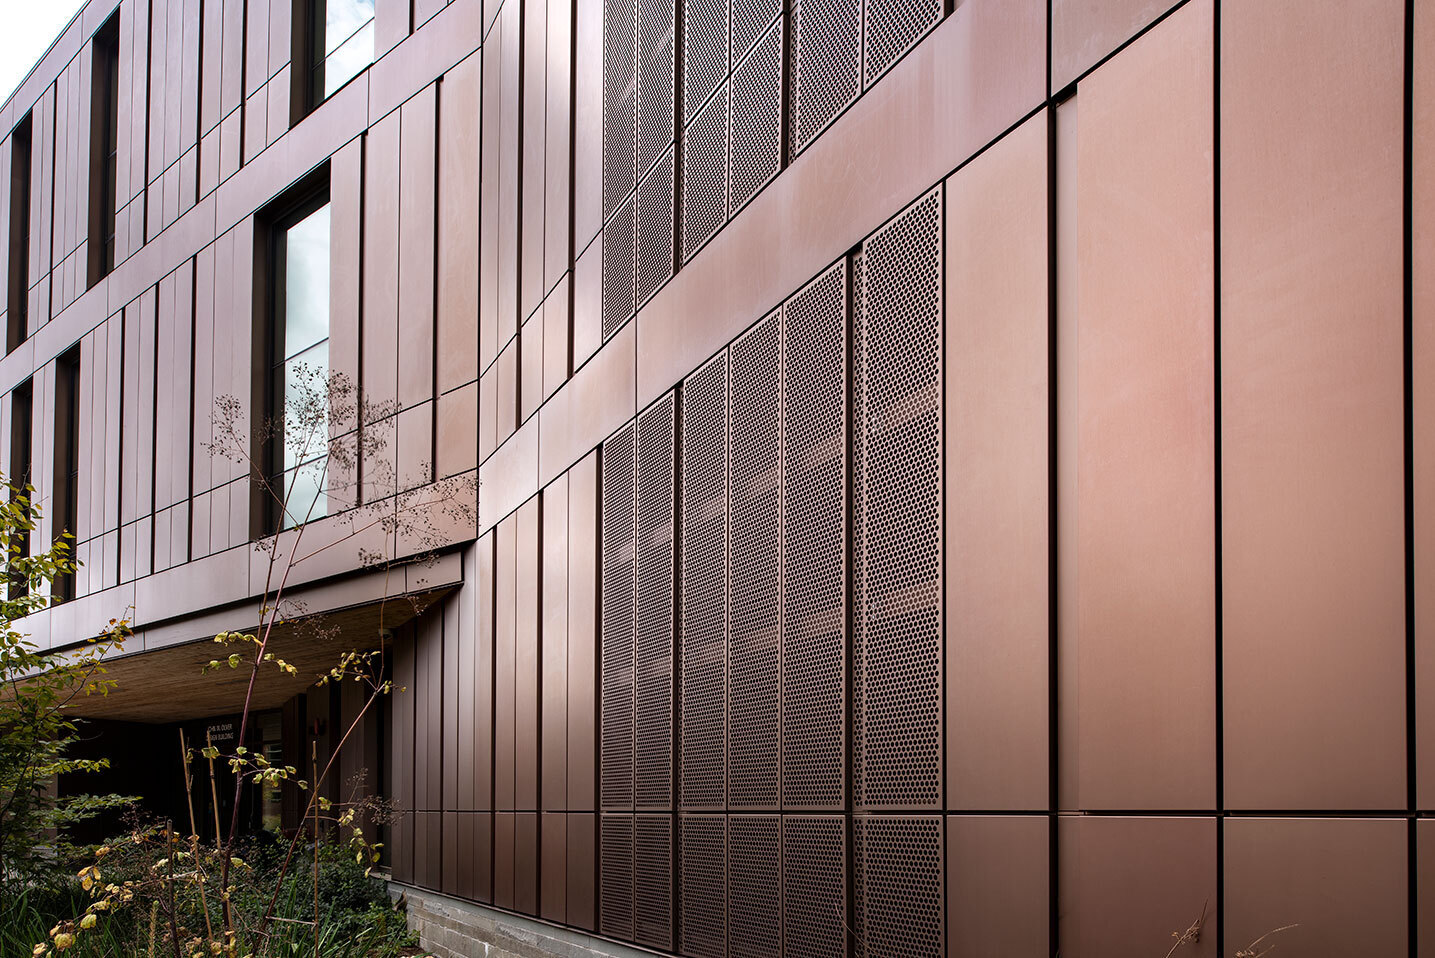 Dri Design Shadow Series metal panels add depth and definition to exterior facade cladding on any architectural design.   Individual panels (unlimited colors available) can be extended at varying depths to create texture or a dynamic variation in patterns, all while keeping the substrate and weather barrier in the same plane.  Dri-Design creates a unique, sustainable, fully-tested and economical panels.